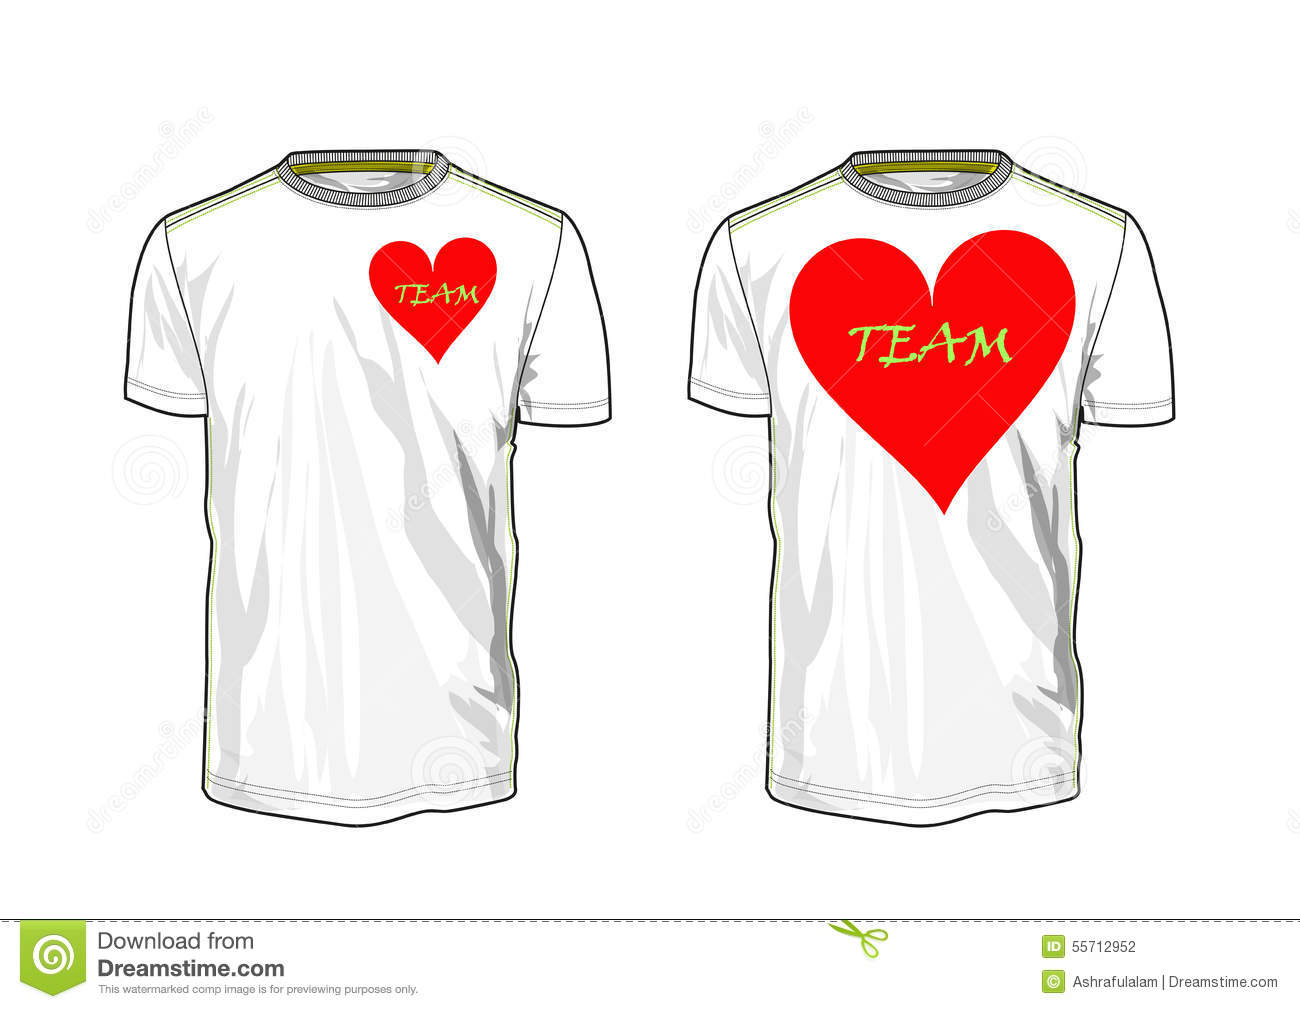 Heart design t shirt - Background Concept Design Heart Love Shirt